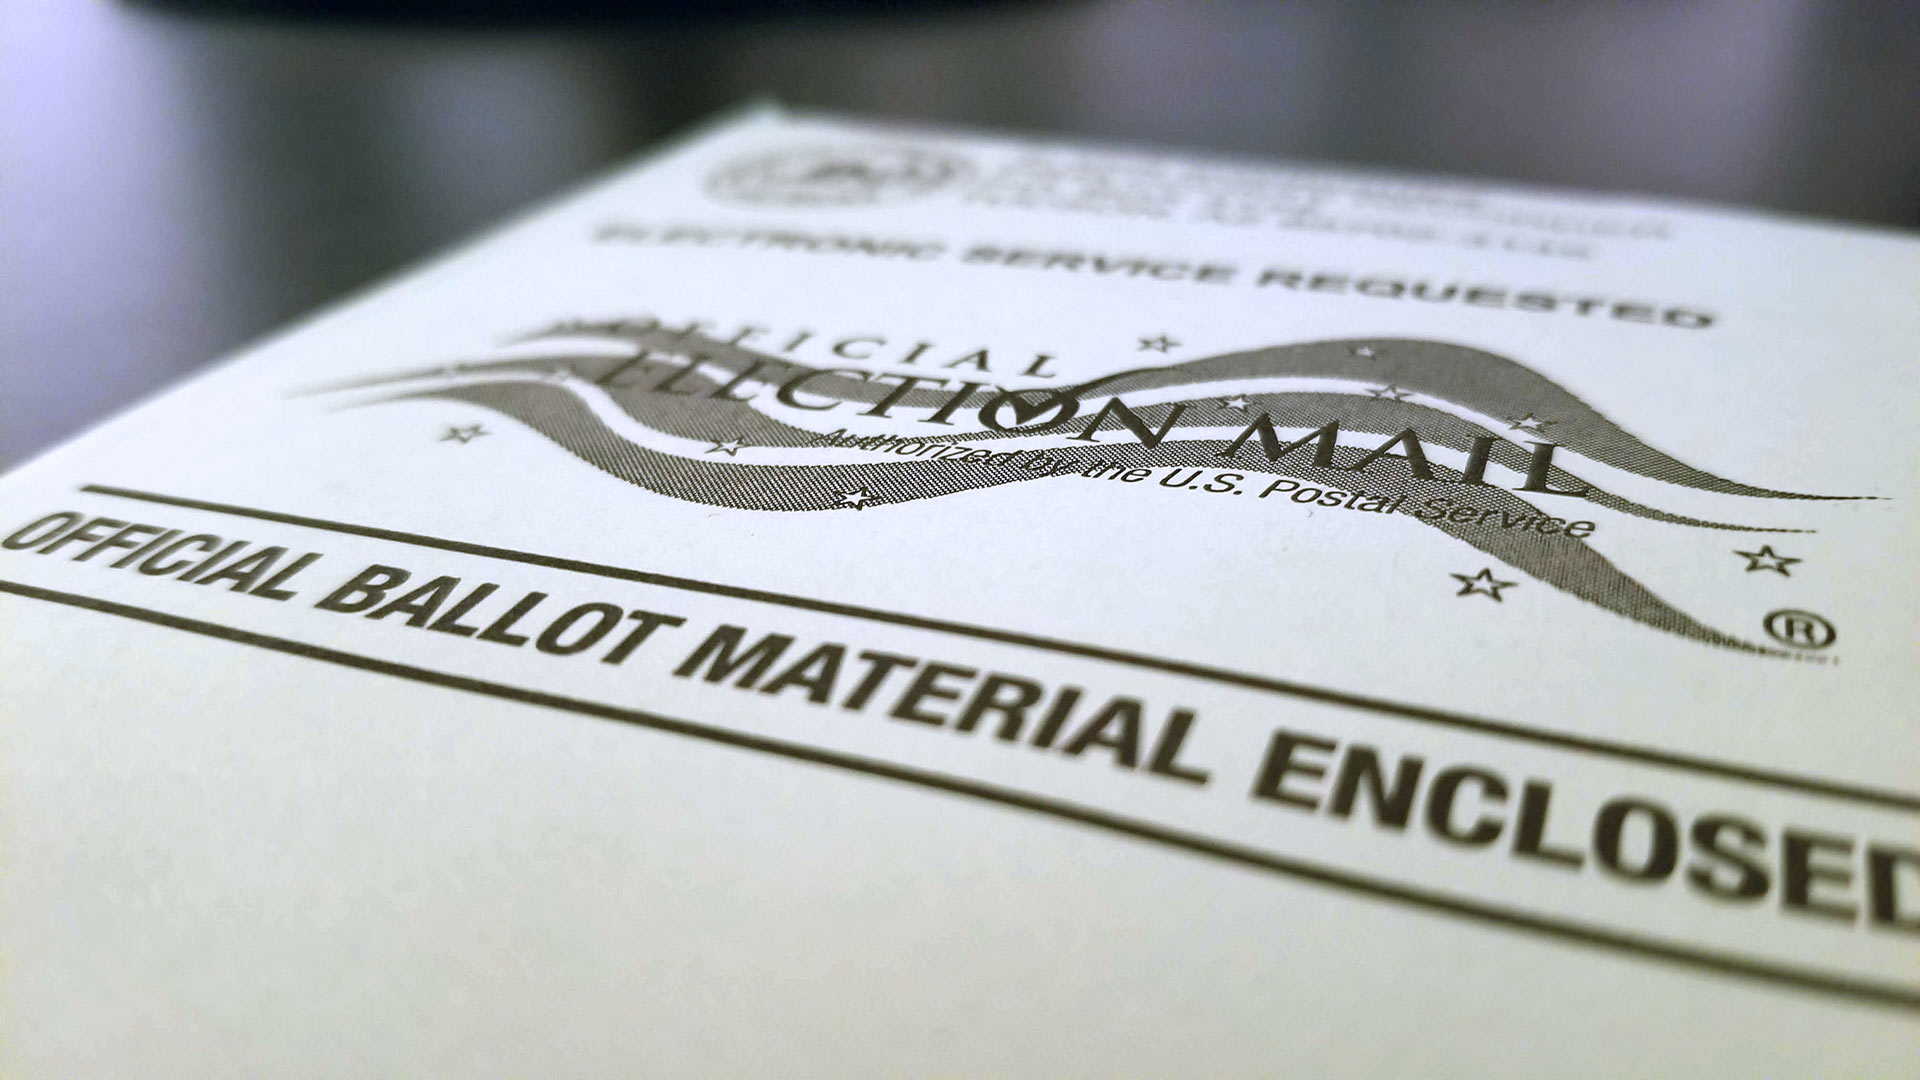 A Pima County vote-by-mail envelope.